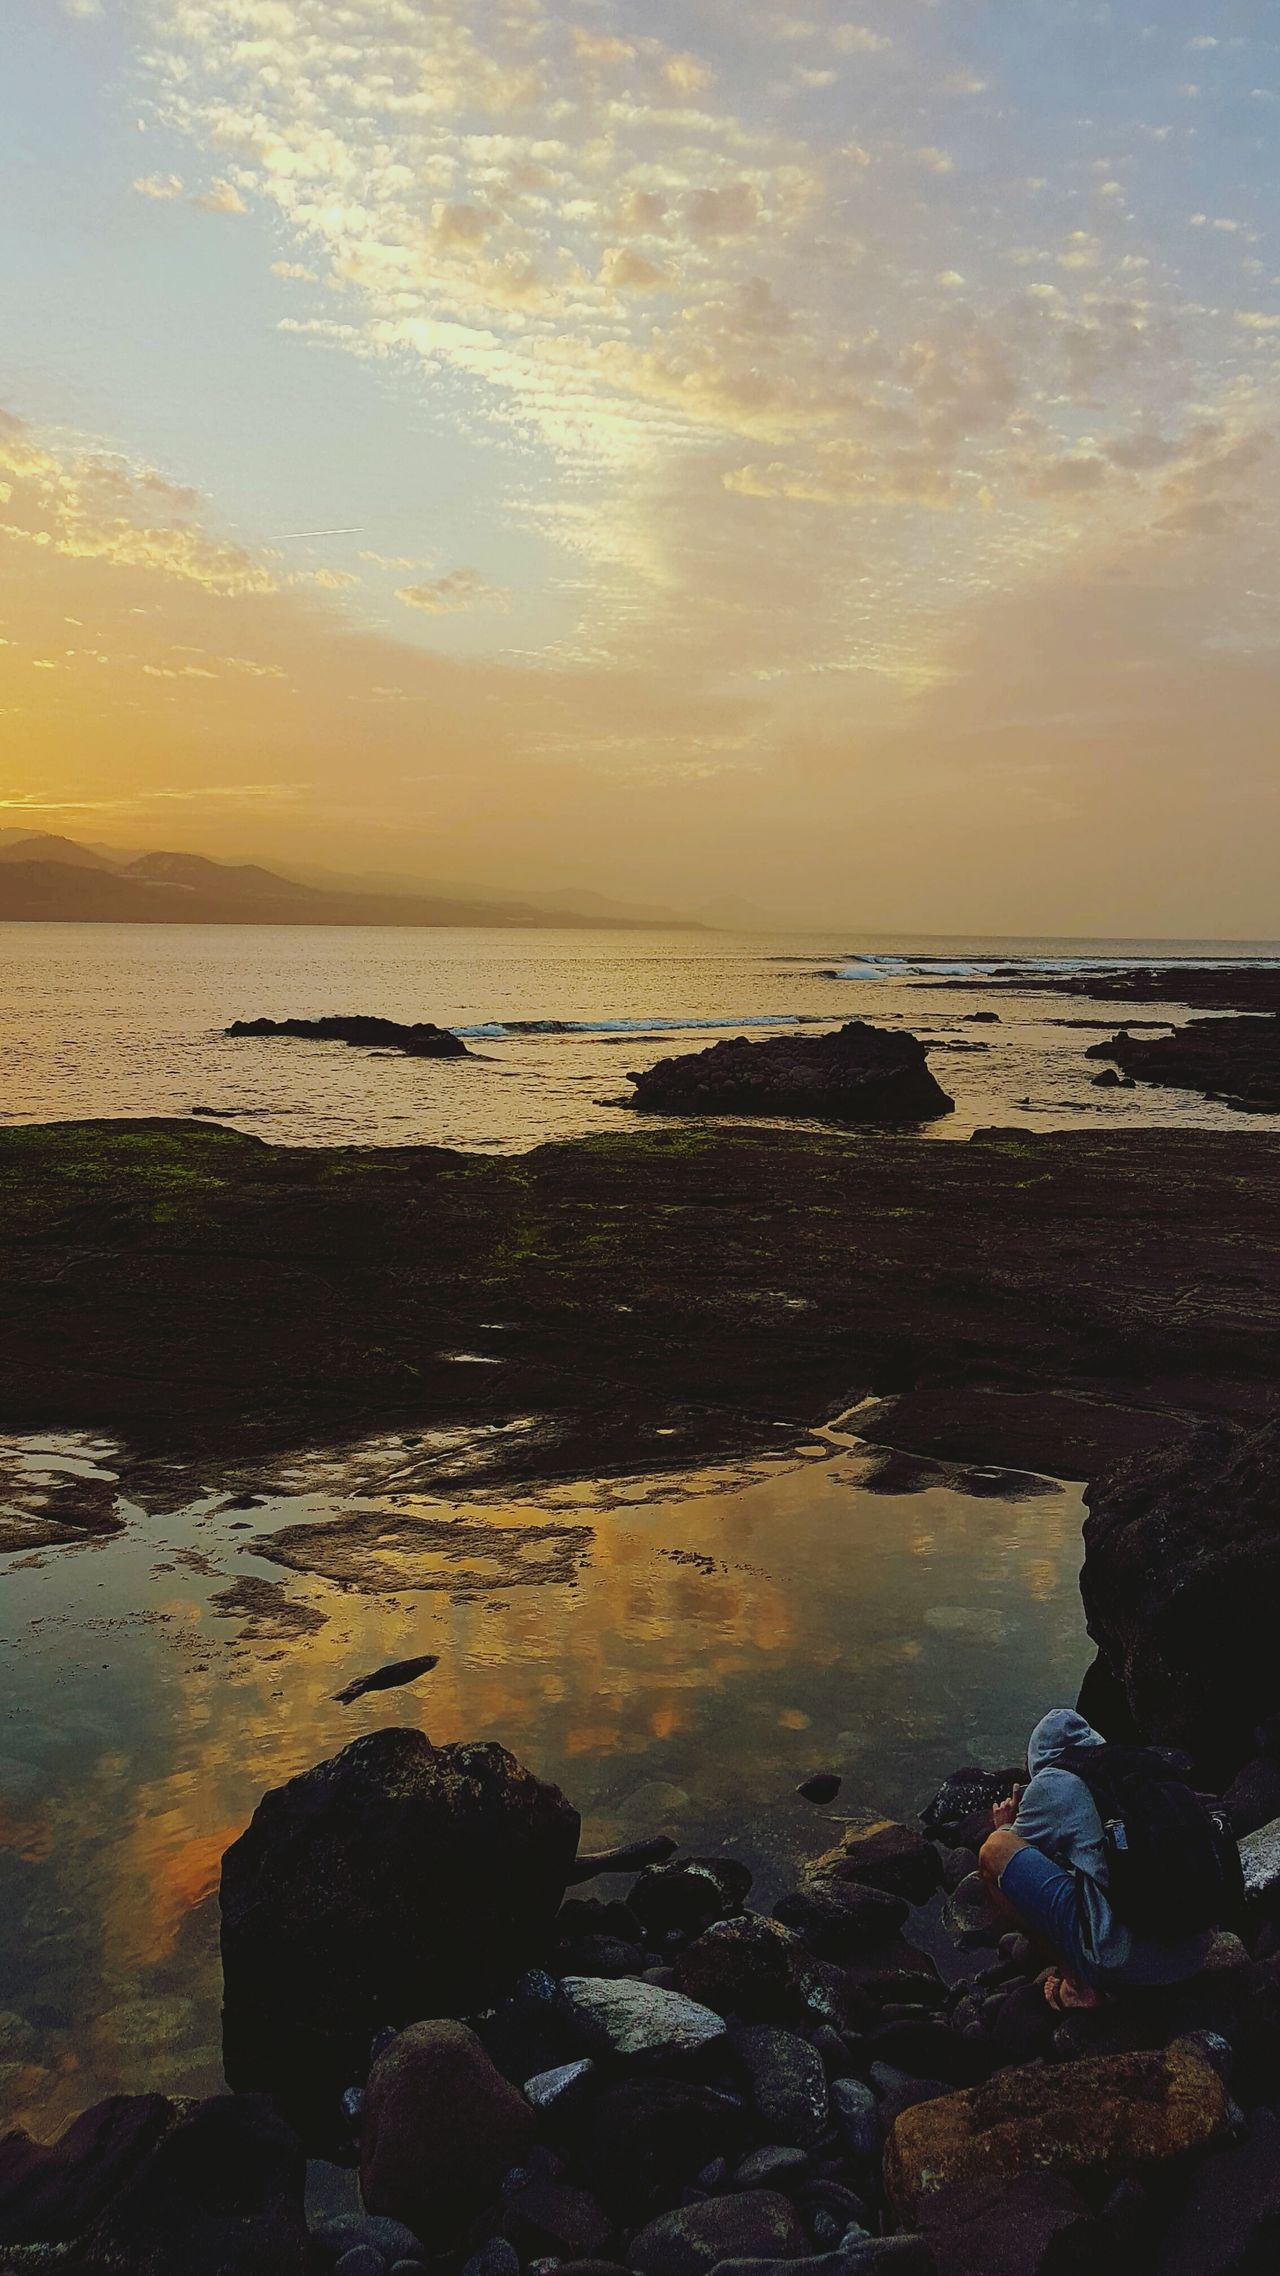 Limited Sunset Reflection Beach Sea Sky Water Nature Scenics No People Outdoors Beauty In Nature Horizon Over Water Day Mountain Road Adventure Ocean Oceanographic